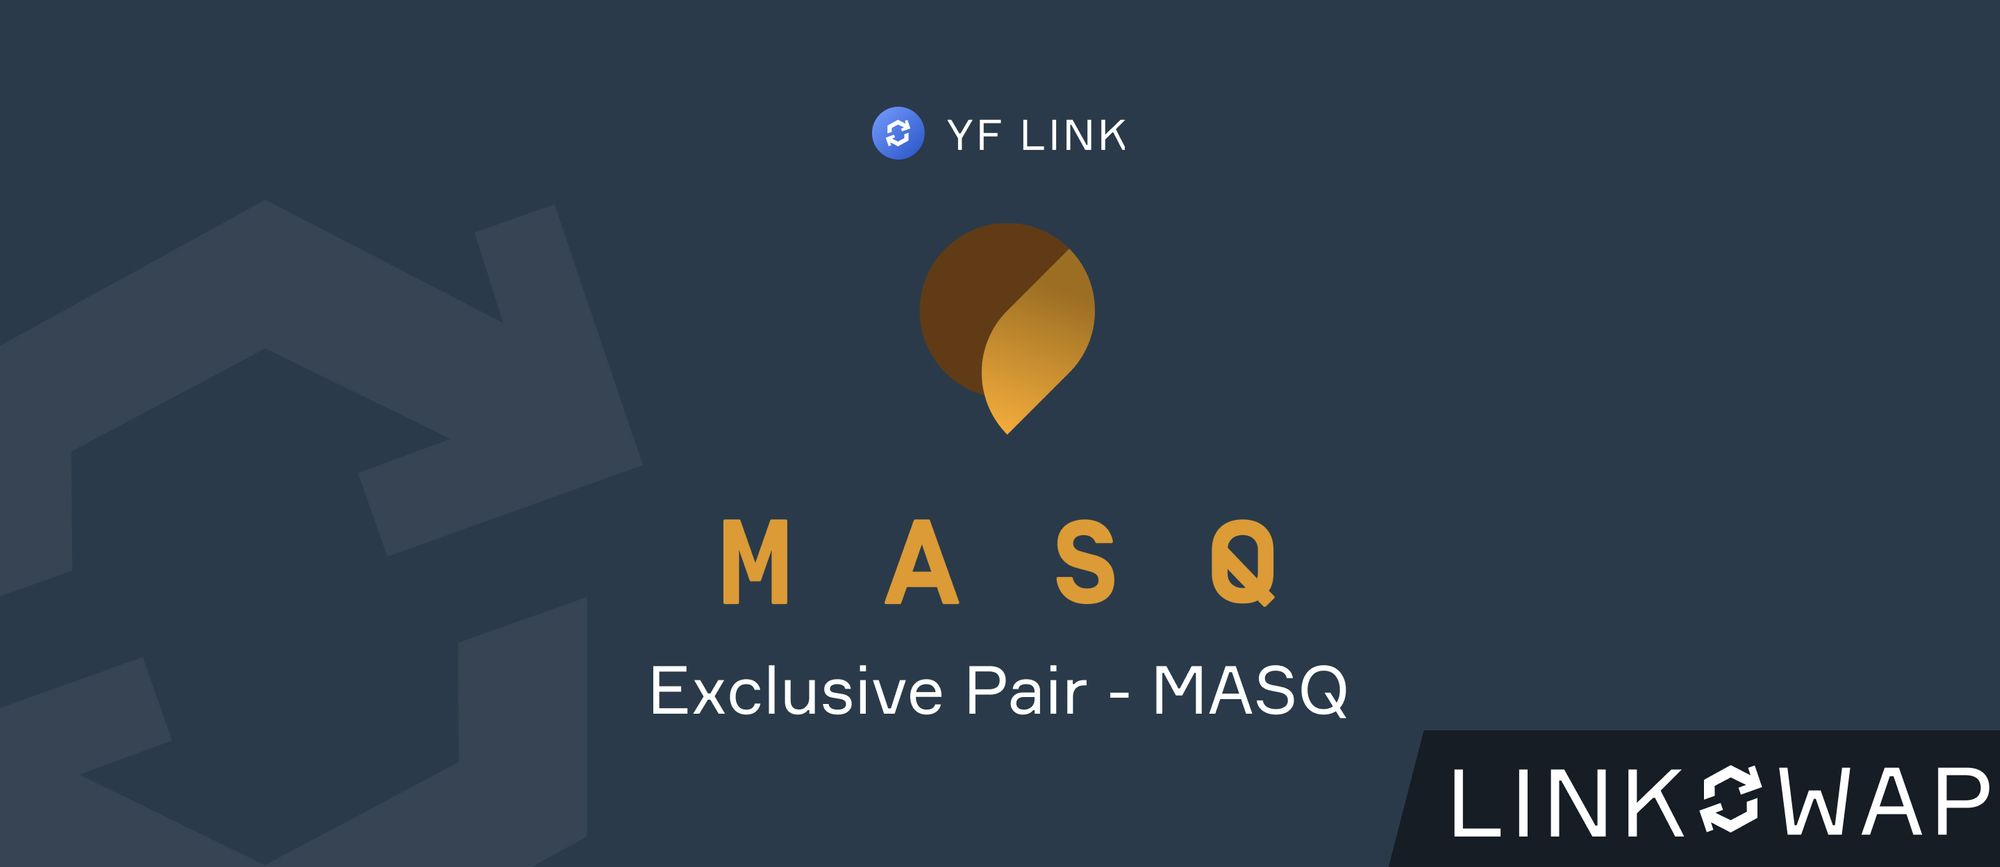 LINKSWAP Exclusive Pair - MASQ